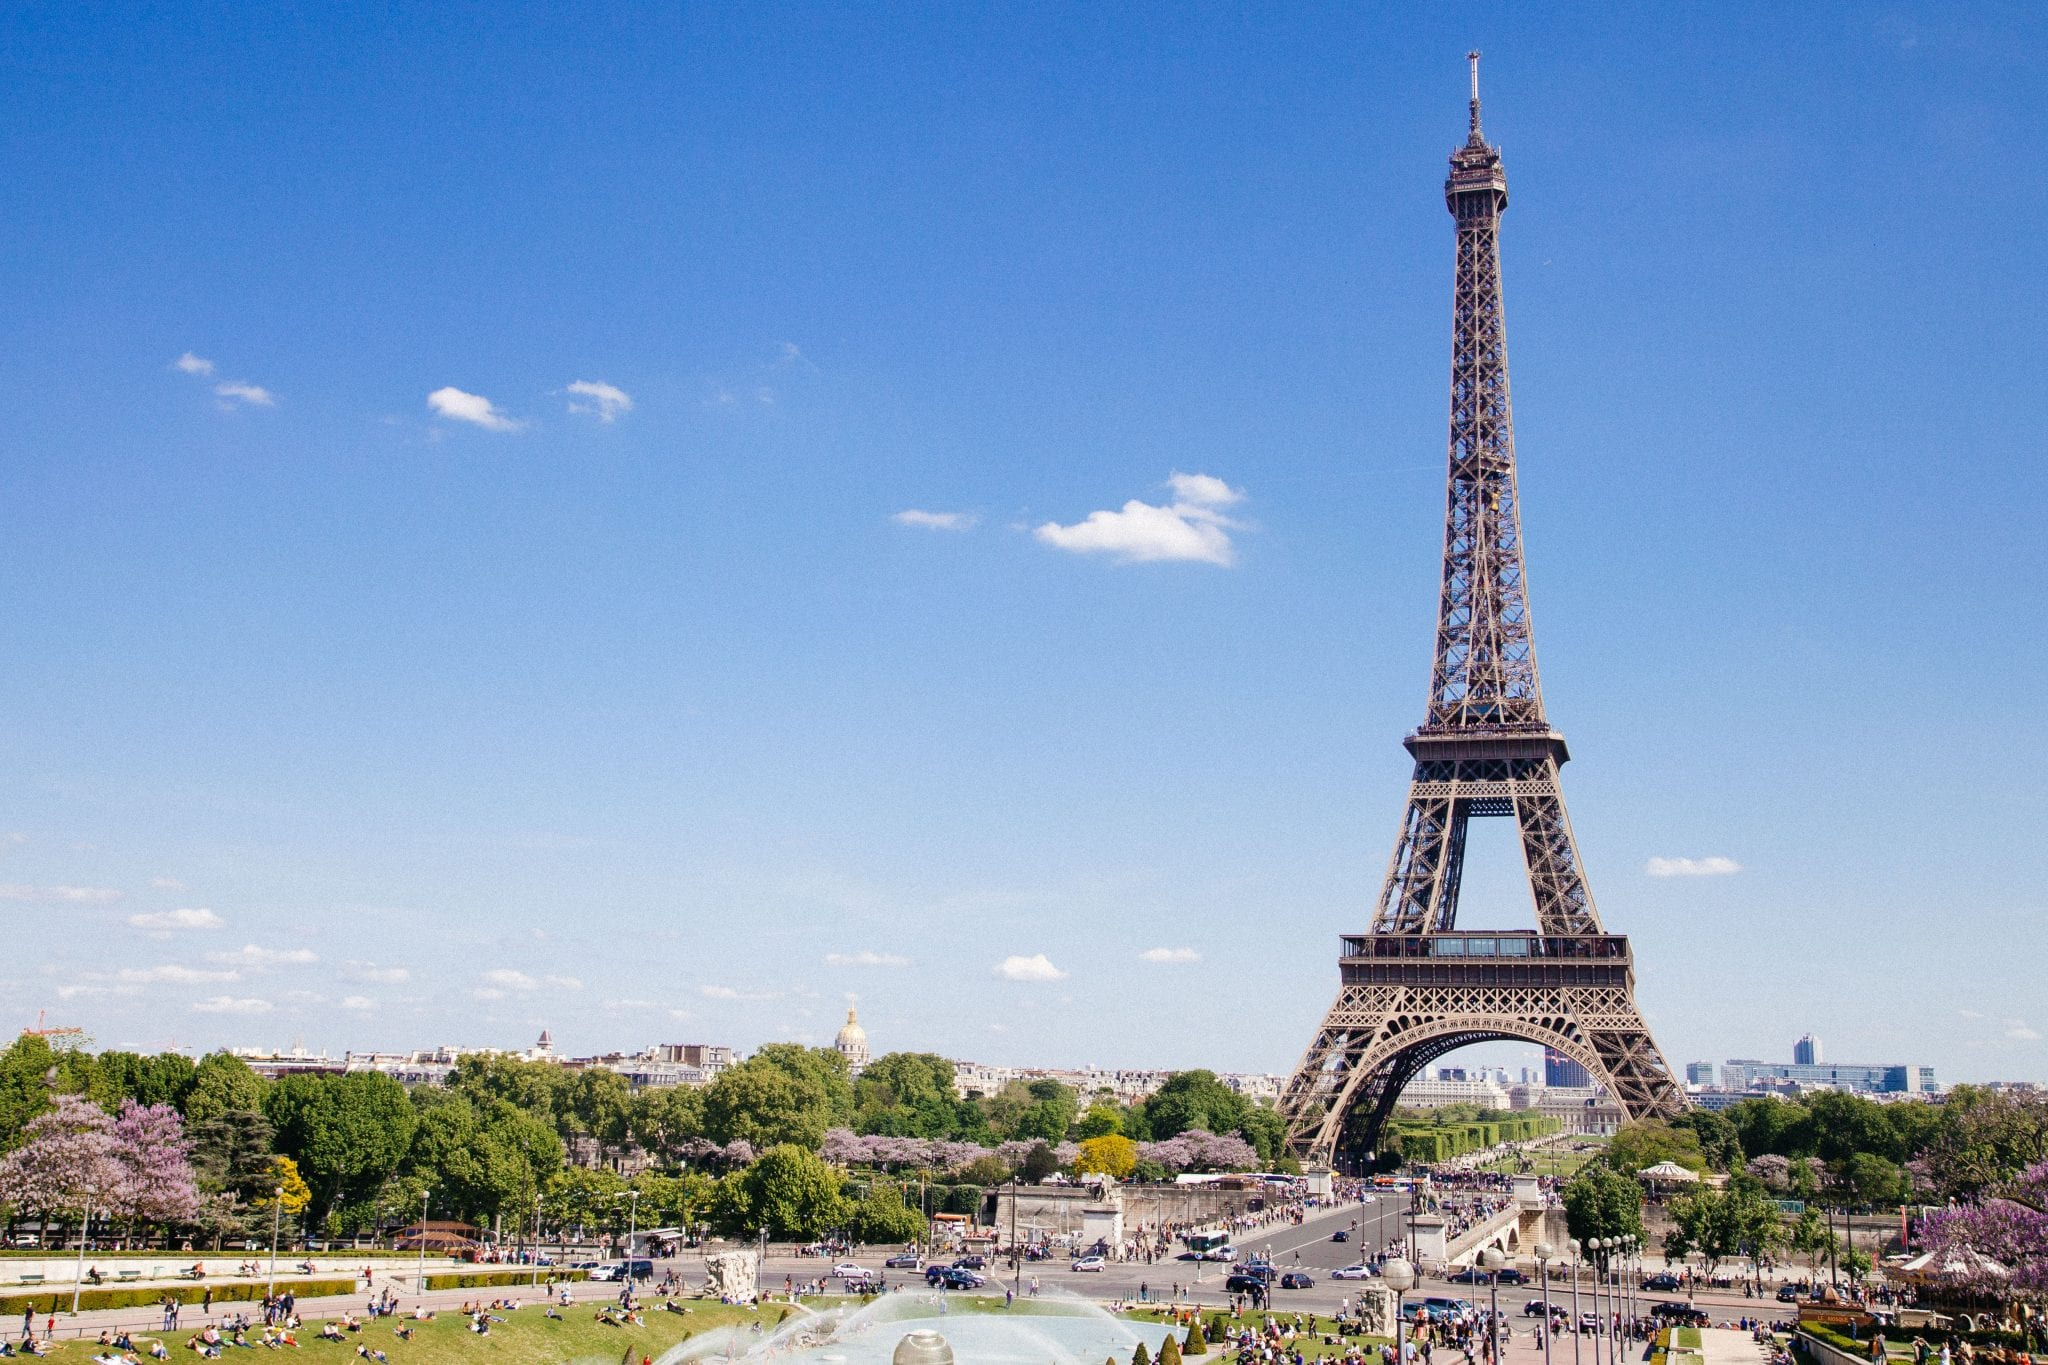 72 hours in Paris: The Perfect Itinerary